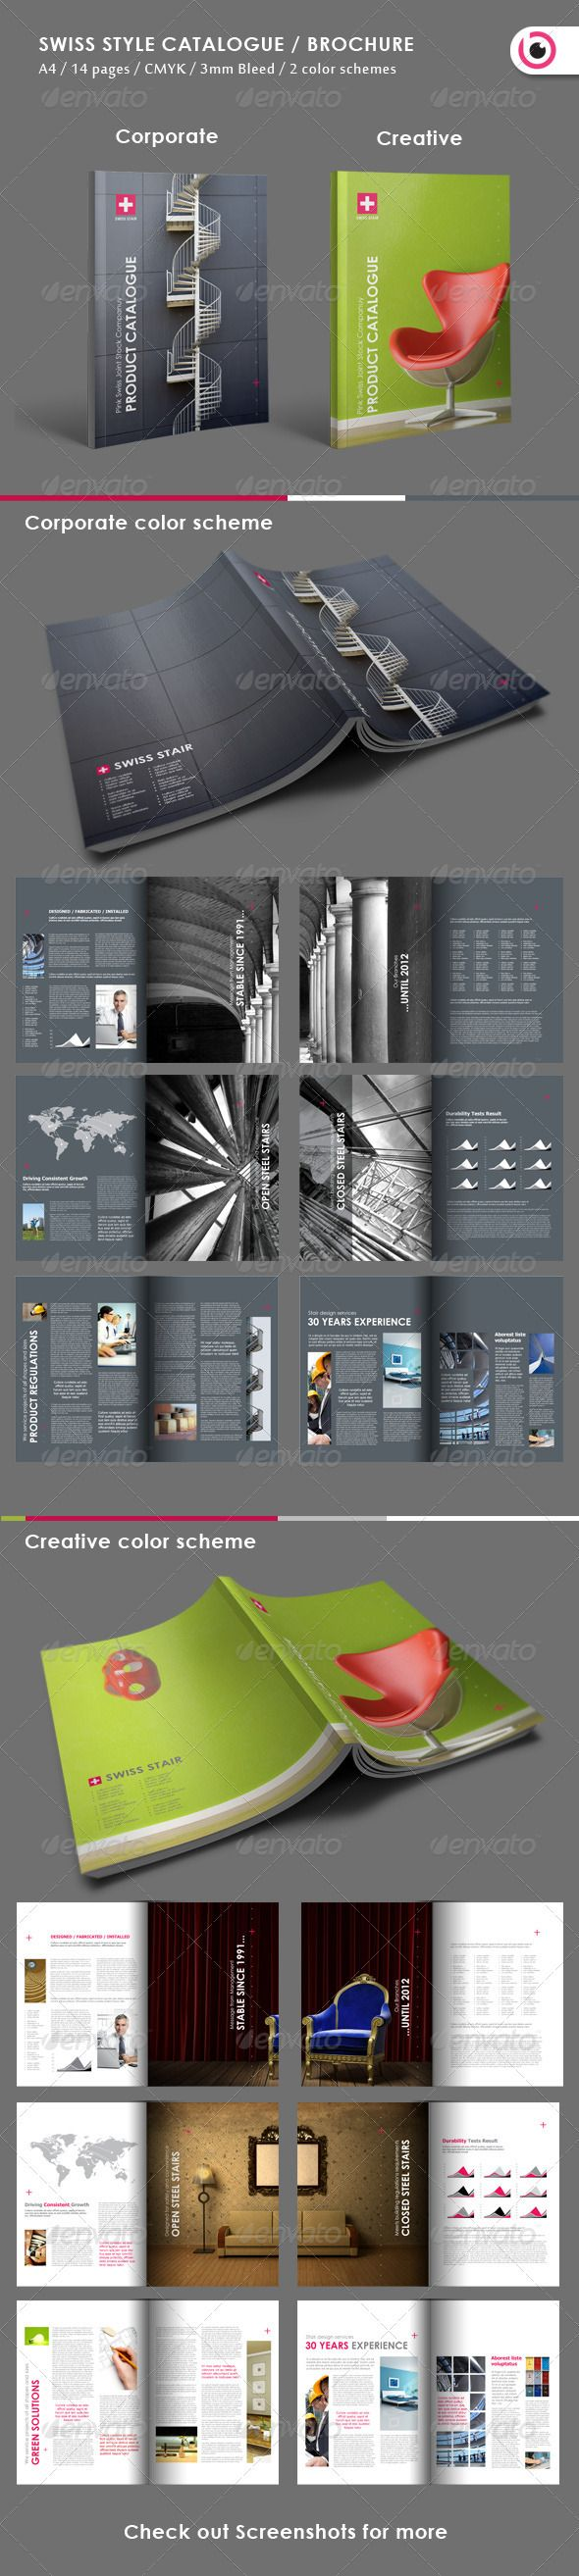 Swiss Style Catalogue/ Brochure   GraphicRiver Item For Sale